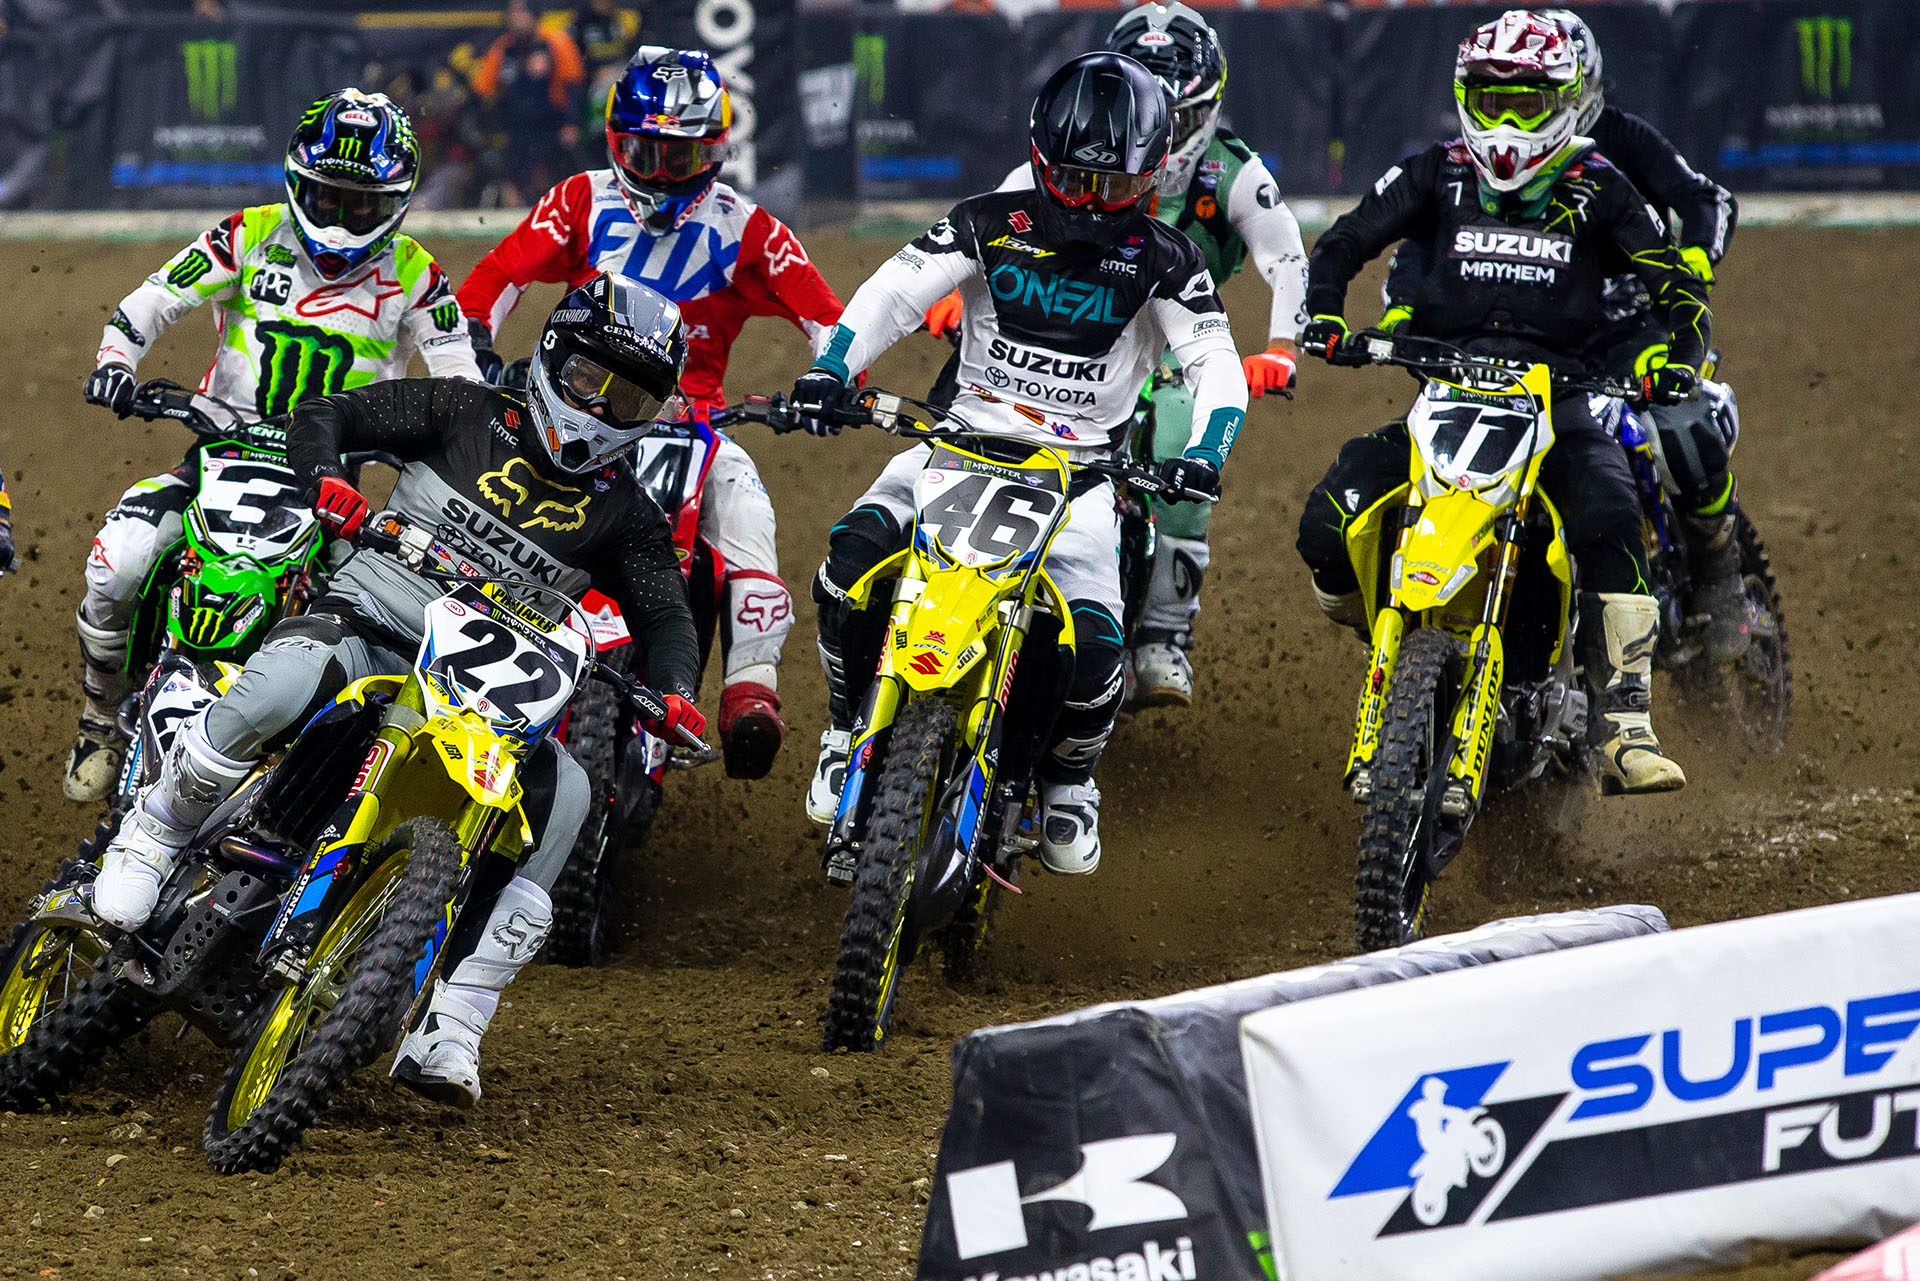 Chad Reed's Podium in Detroit Adds to Record-Breaking Hall of Fame ...